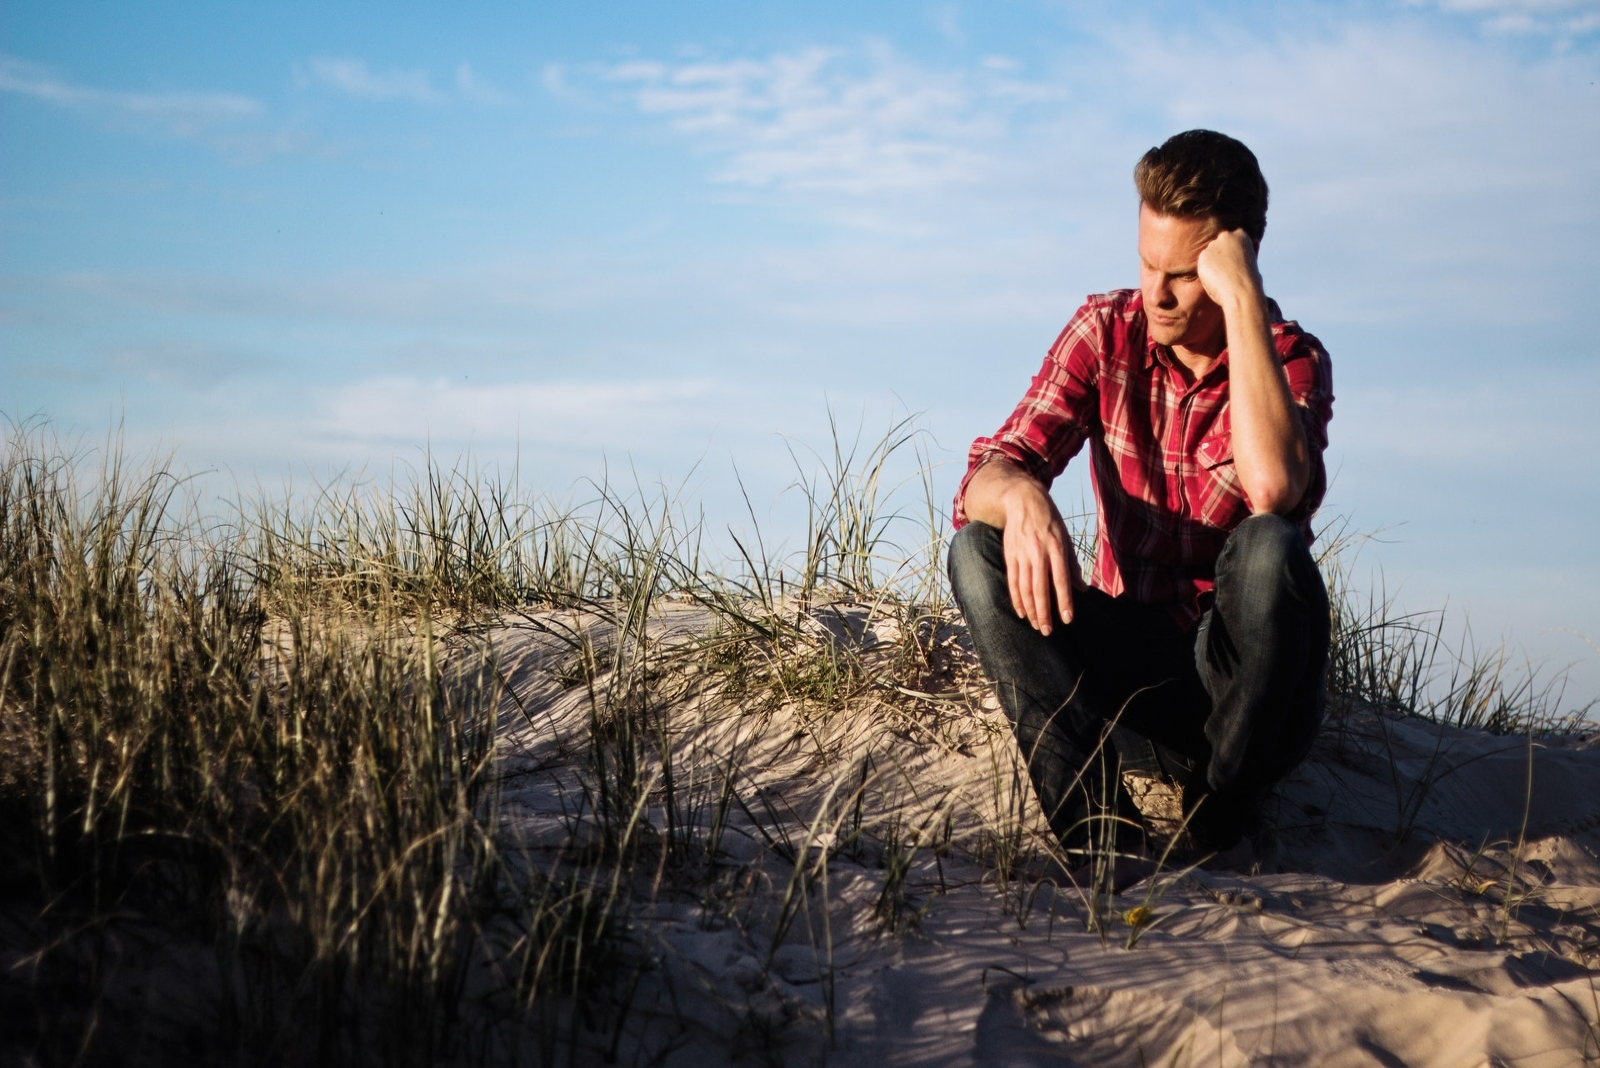 pensive man in red shirt sitting on sand